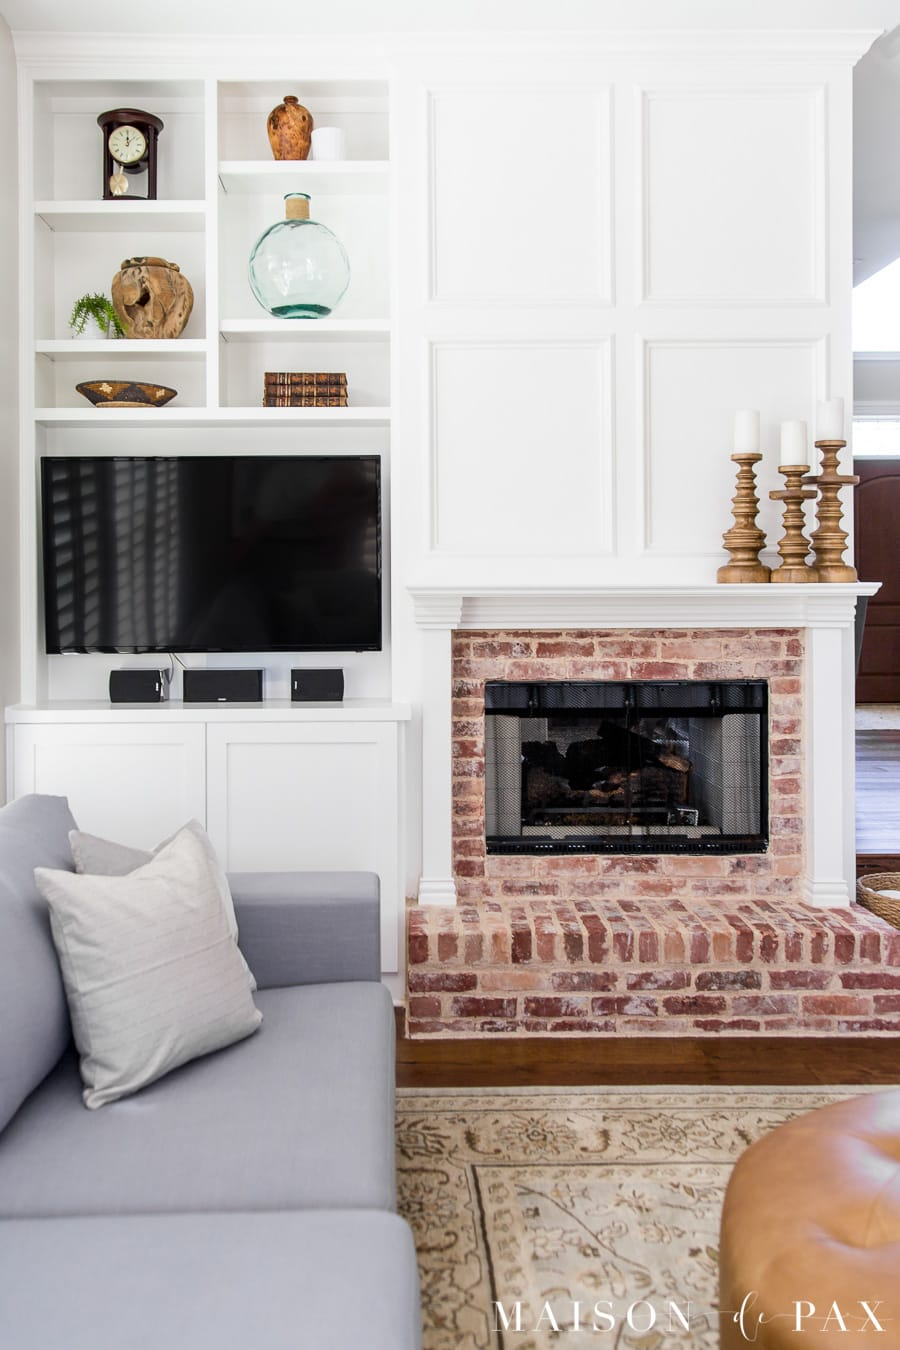 Charming The Built In Nook Beside The Fireplace Is Perfect For The Tv, And A